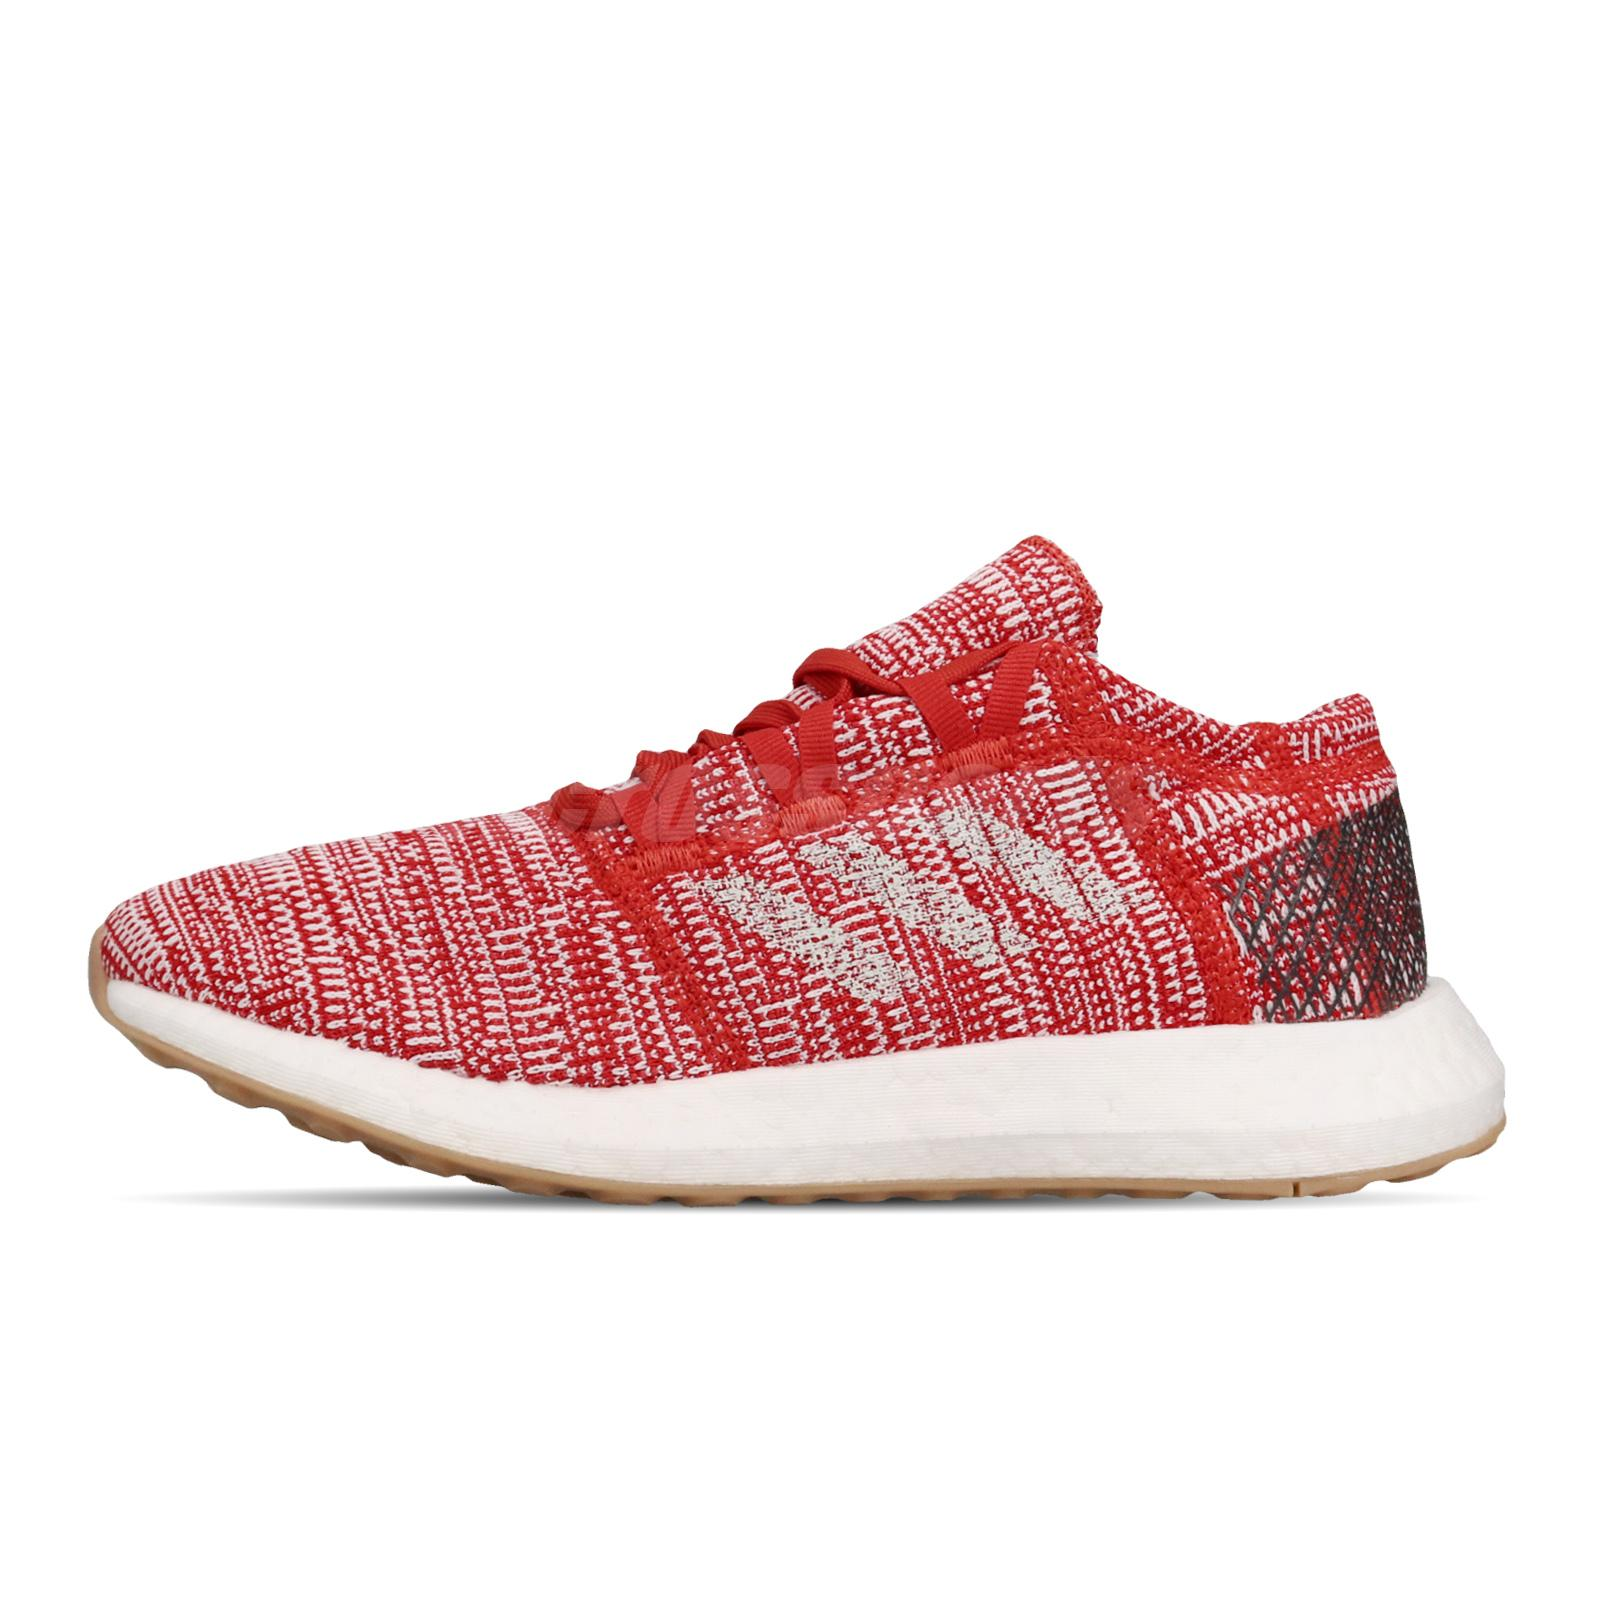 Details about adidas PureBOOST Go J Red White BOOST Womens Running Shoes F34006